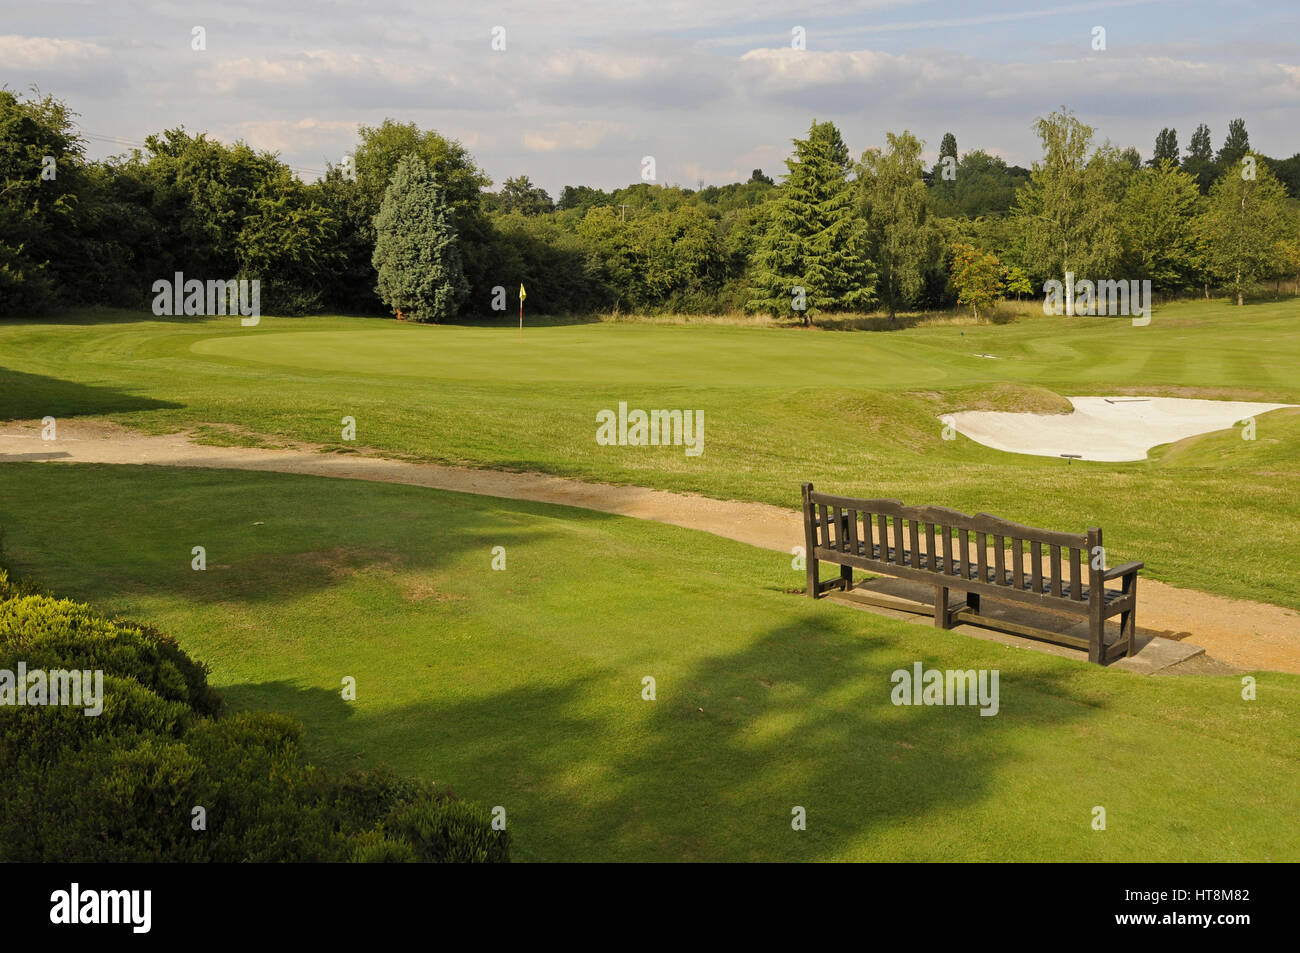 View over 13th Tee and bench to the 12th Green, Woodcote Park Golf Club, Coulsdon, Surrey, England Stock Photo